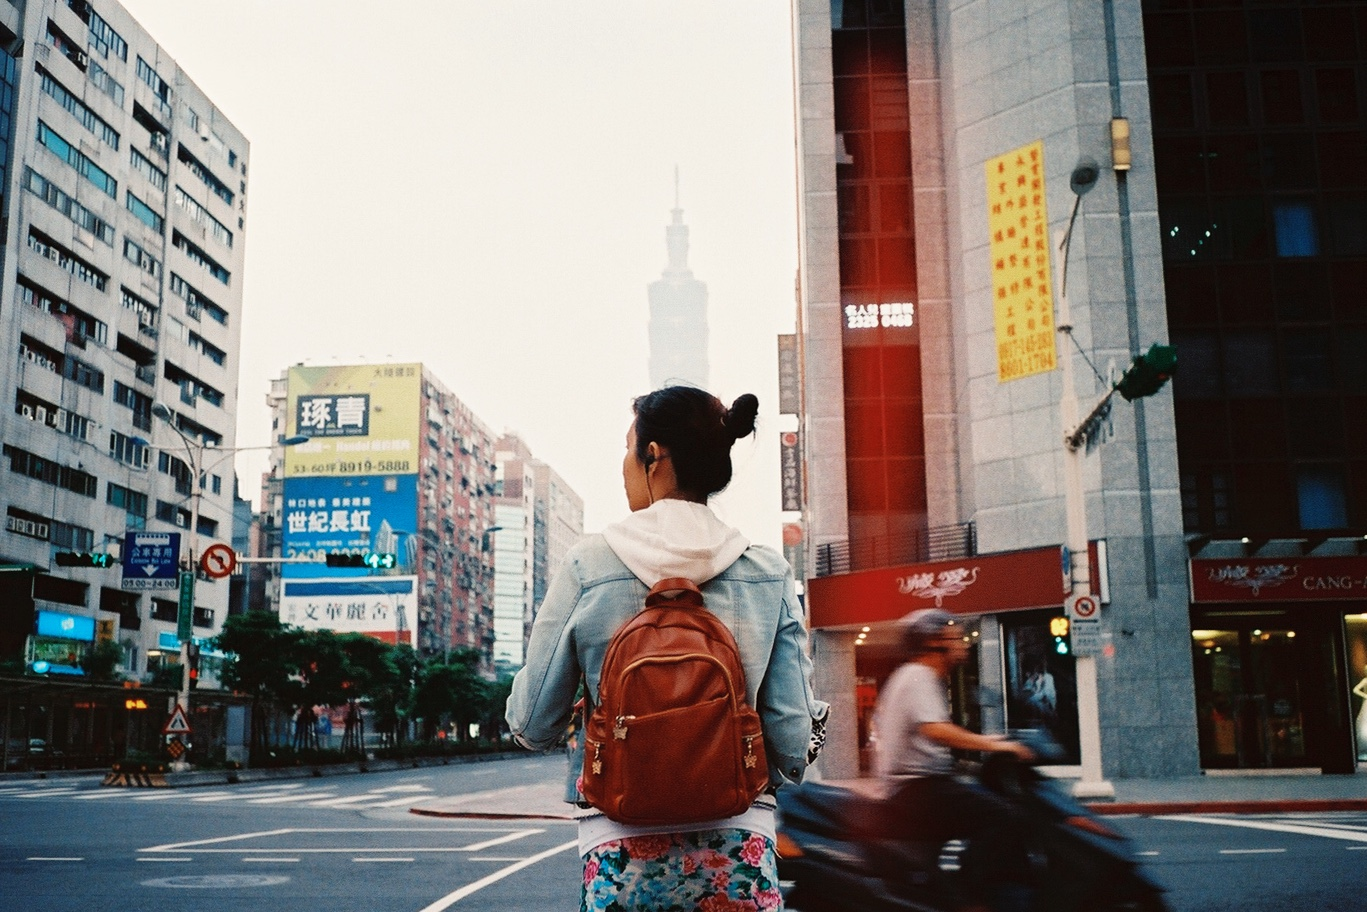 Film shot in Xinyi District, Taipei